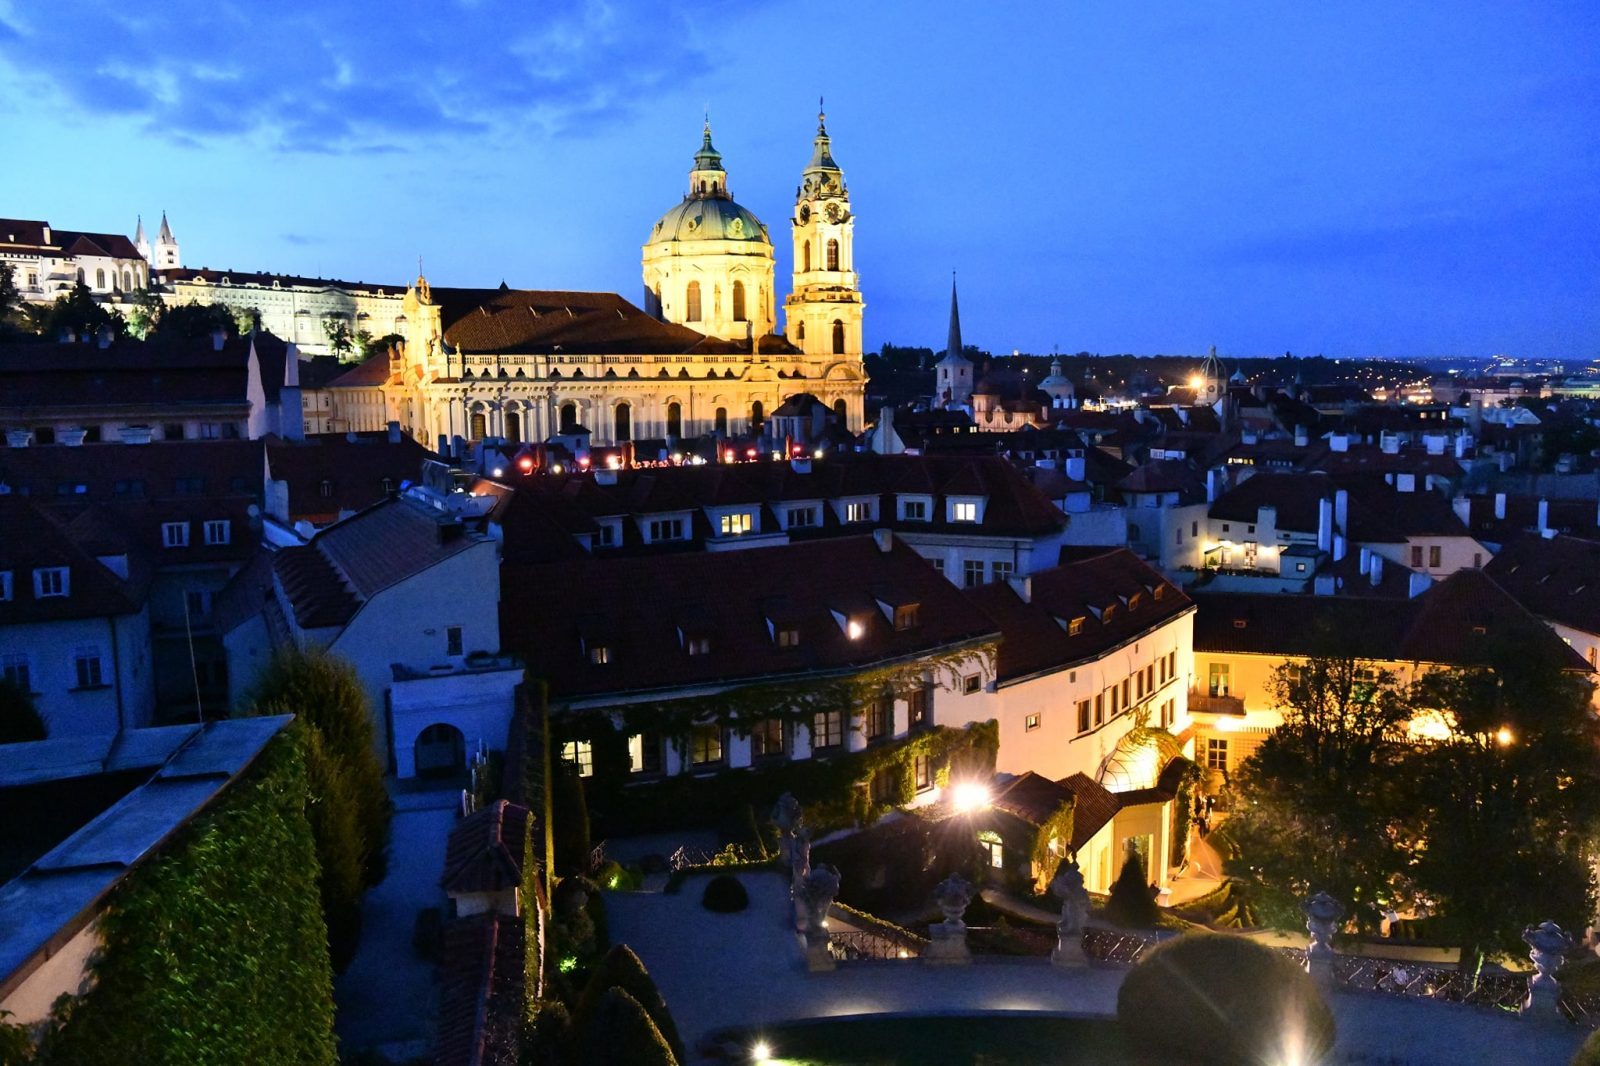 Prague's Baroque Vrtba Garden to light up the Halloween night in Malá Strana